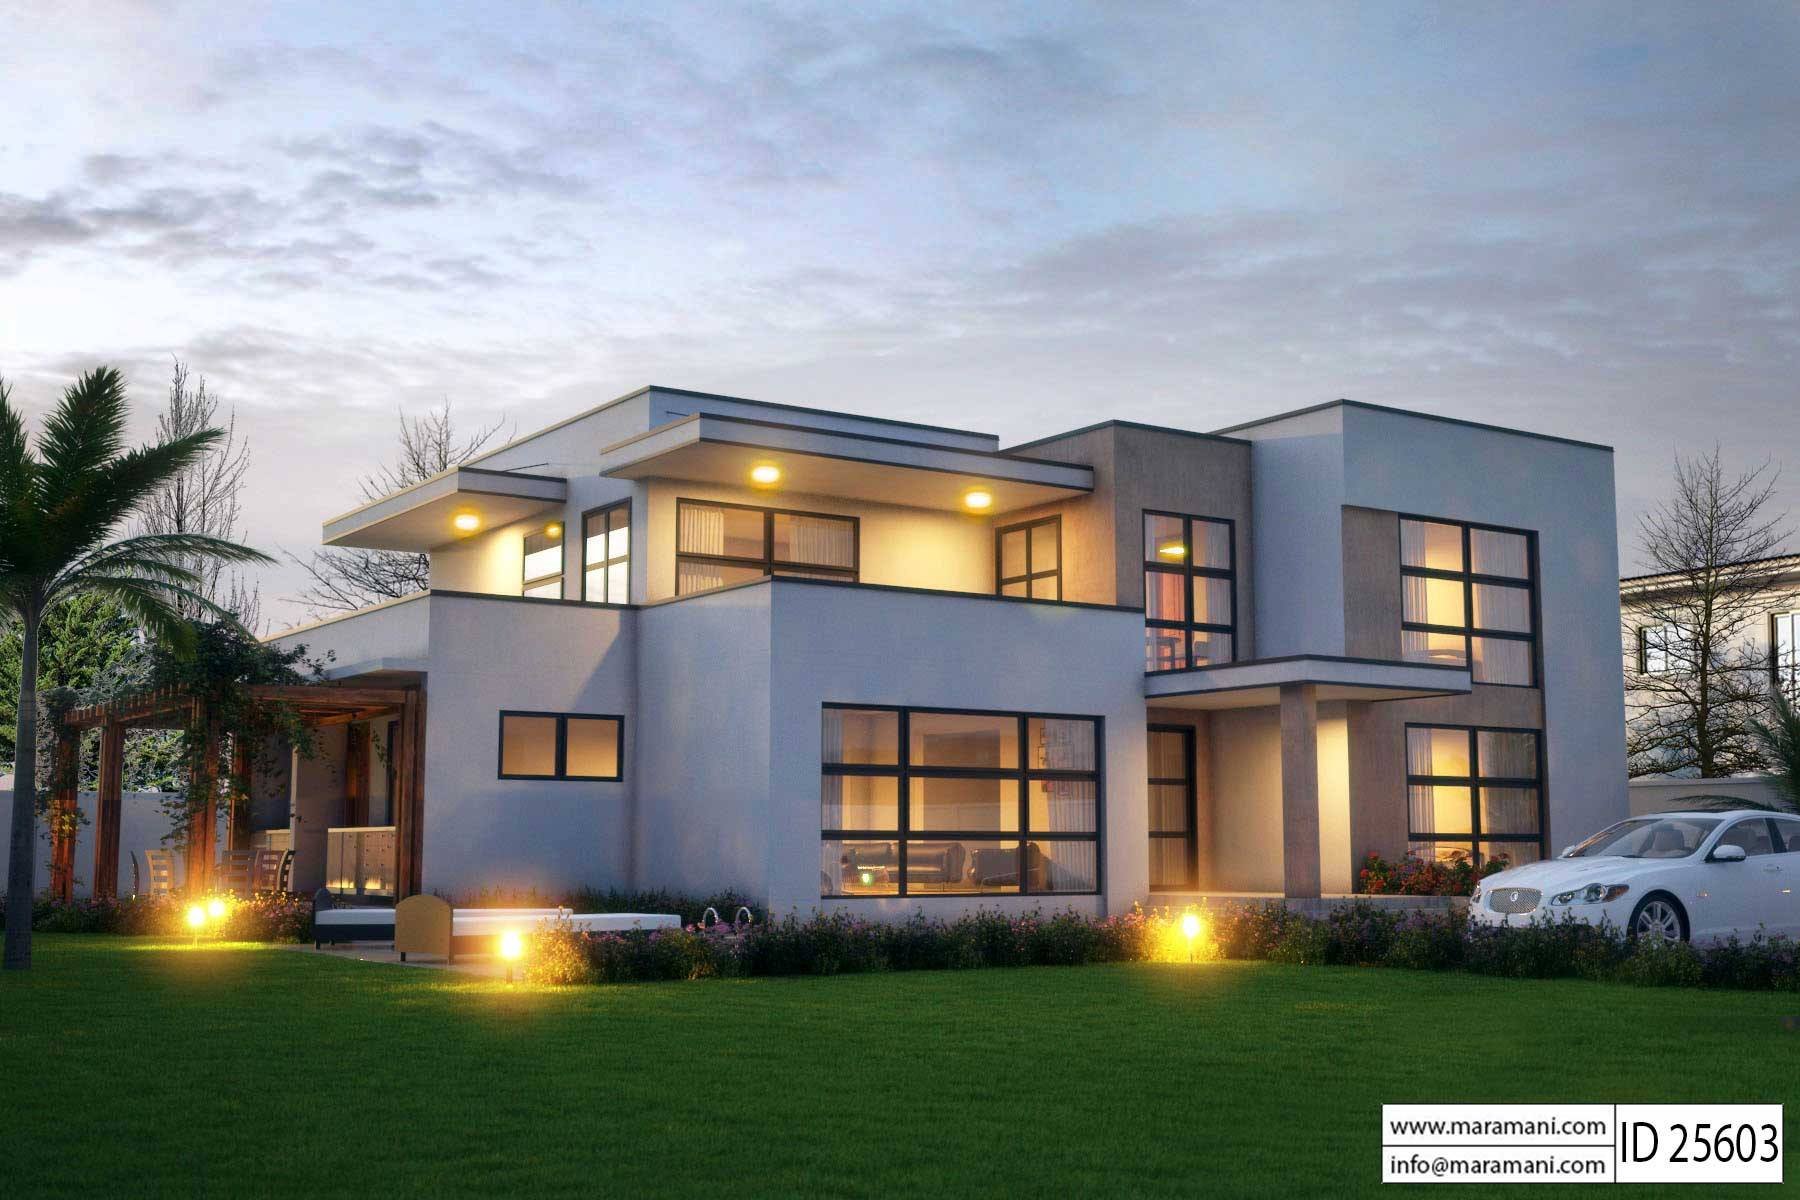 Modern 5 bedroom house design id 25603 floor plans by for 5 6 bedroom house plans